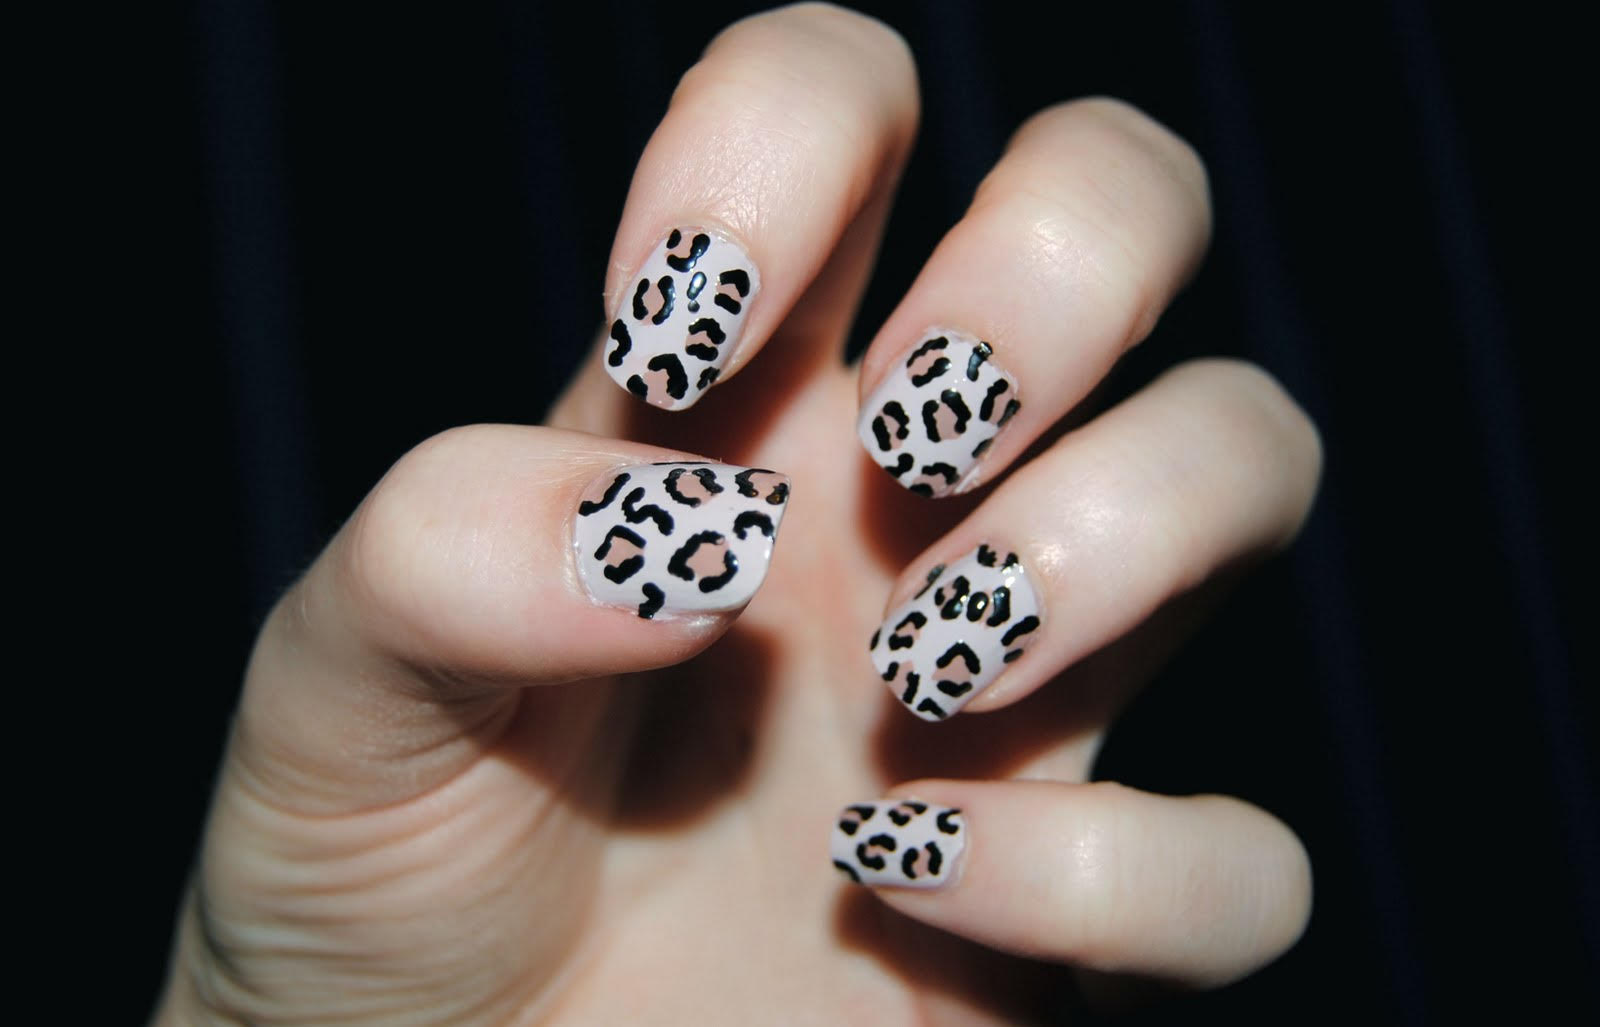 30 Best Nail Art Ideas For 2017 Entertainmentmesh